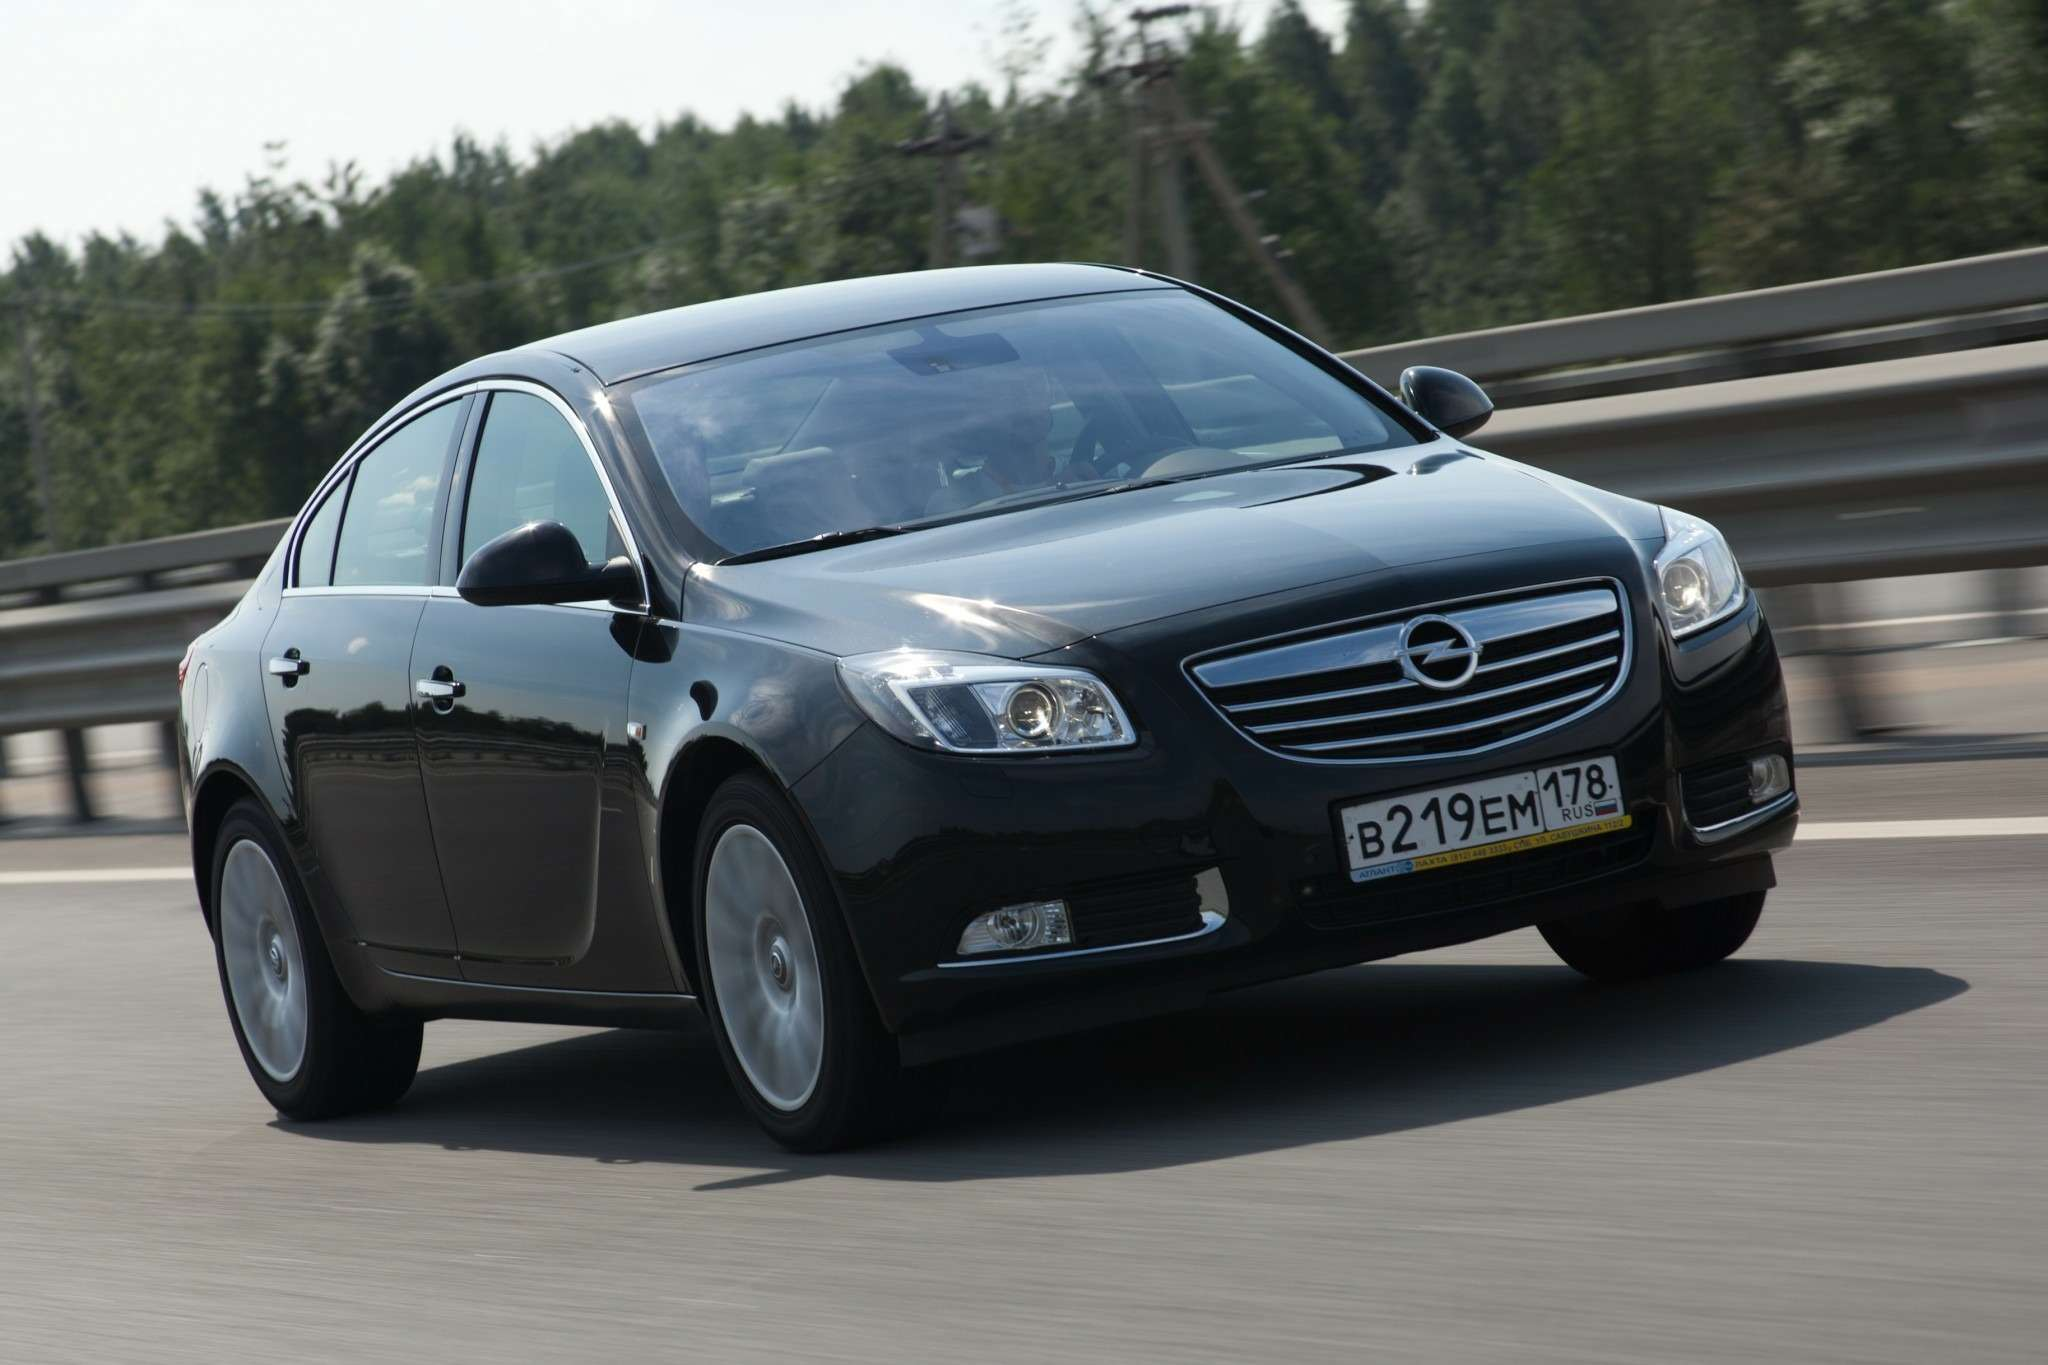 Opel_Insignia_02_no_copyright